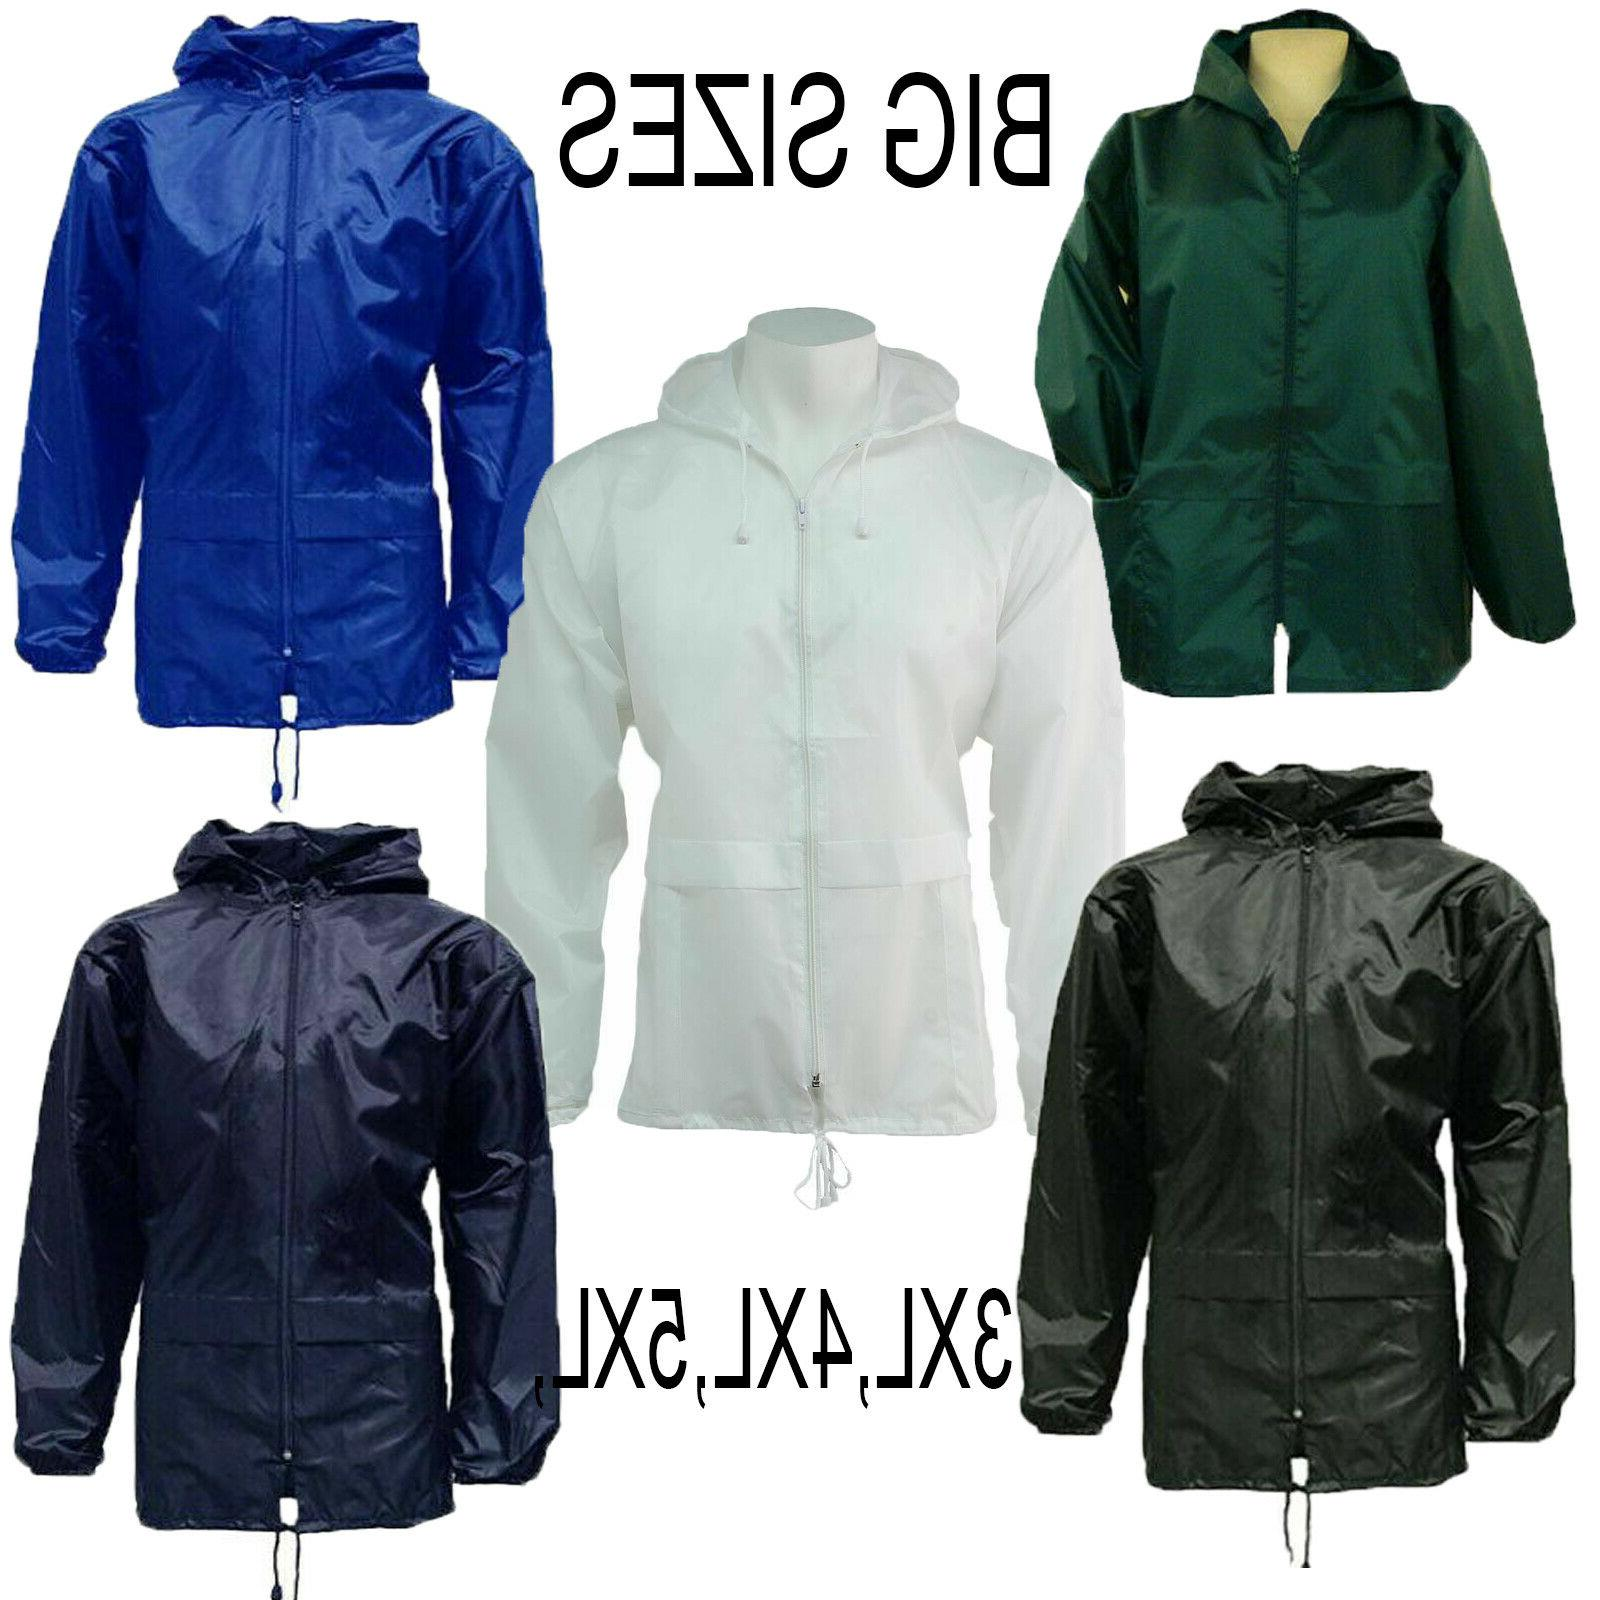 big sizes unisex rain coat jacket kagool